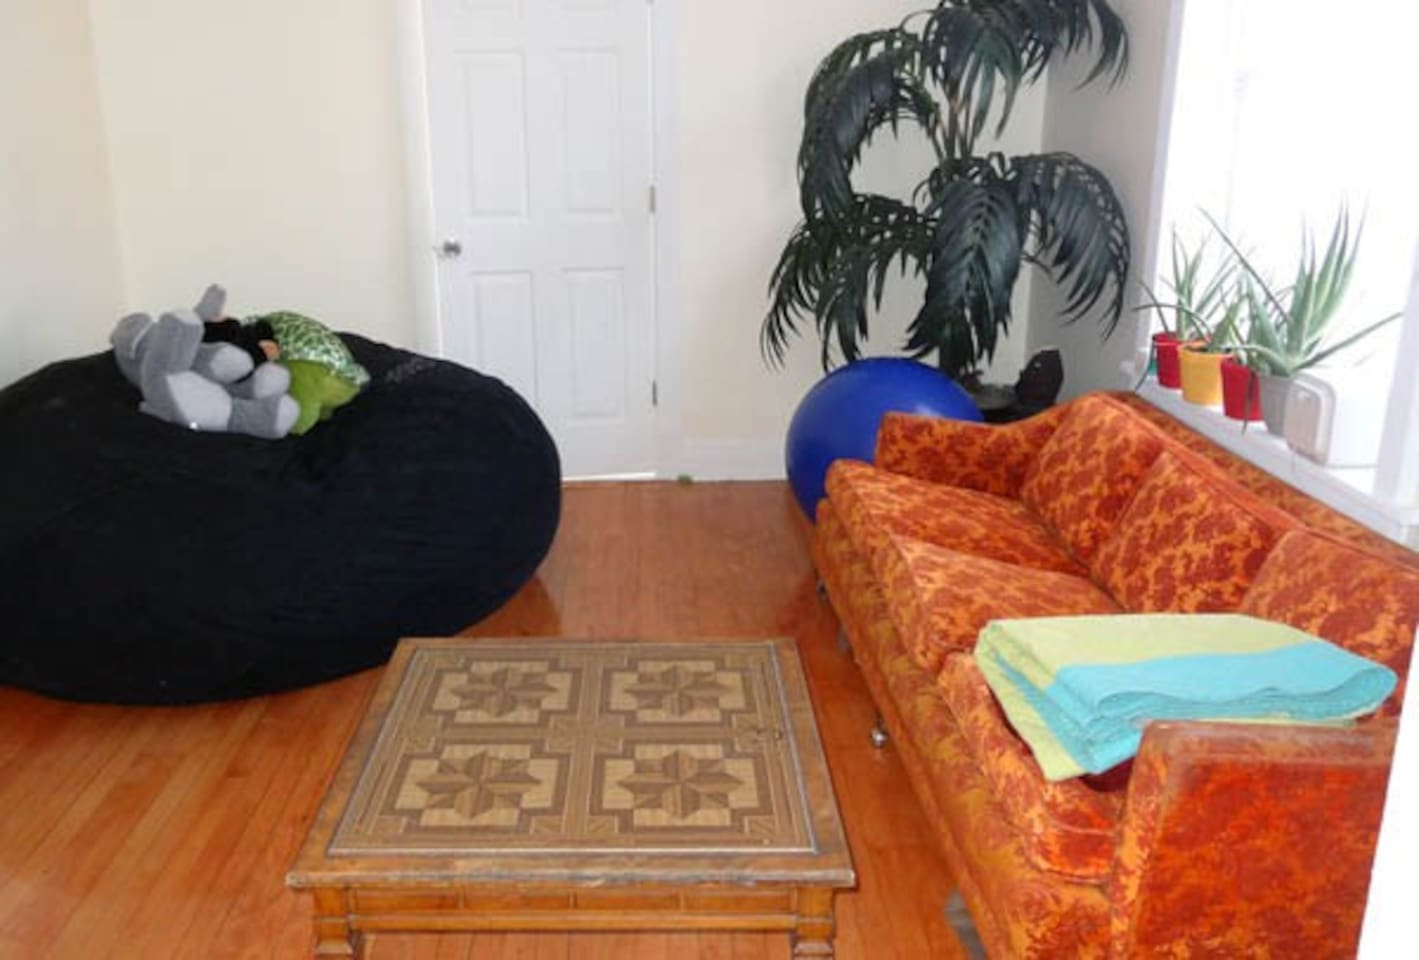 Living room with vintage couch and giant Lovesac bean bag :)